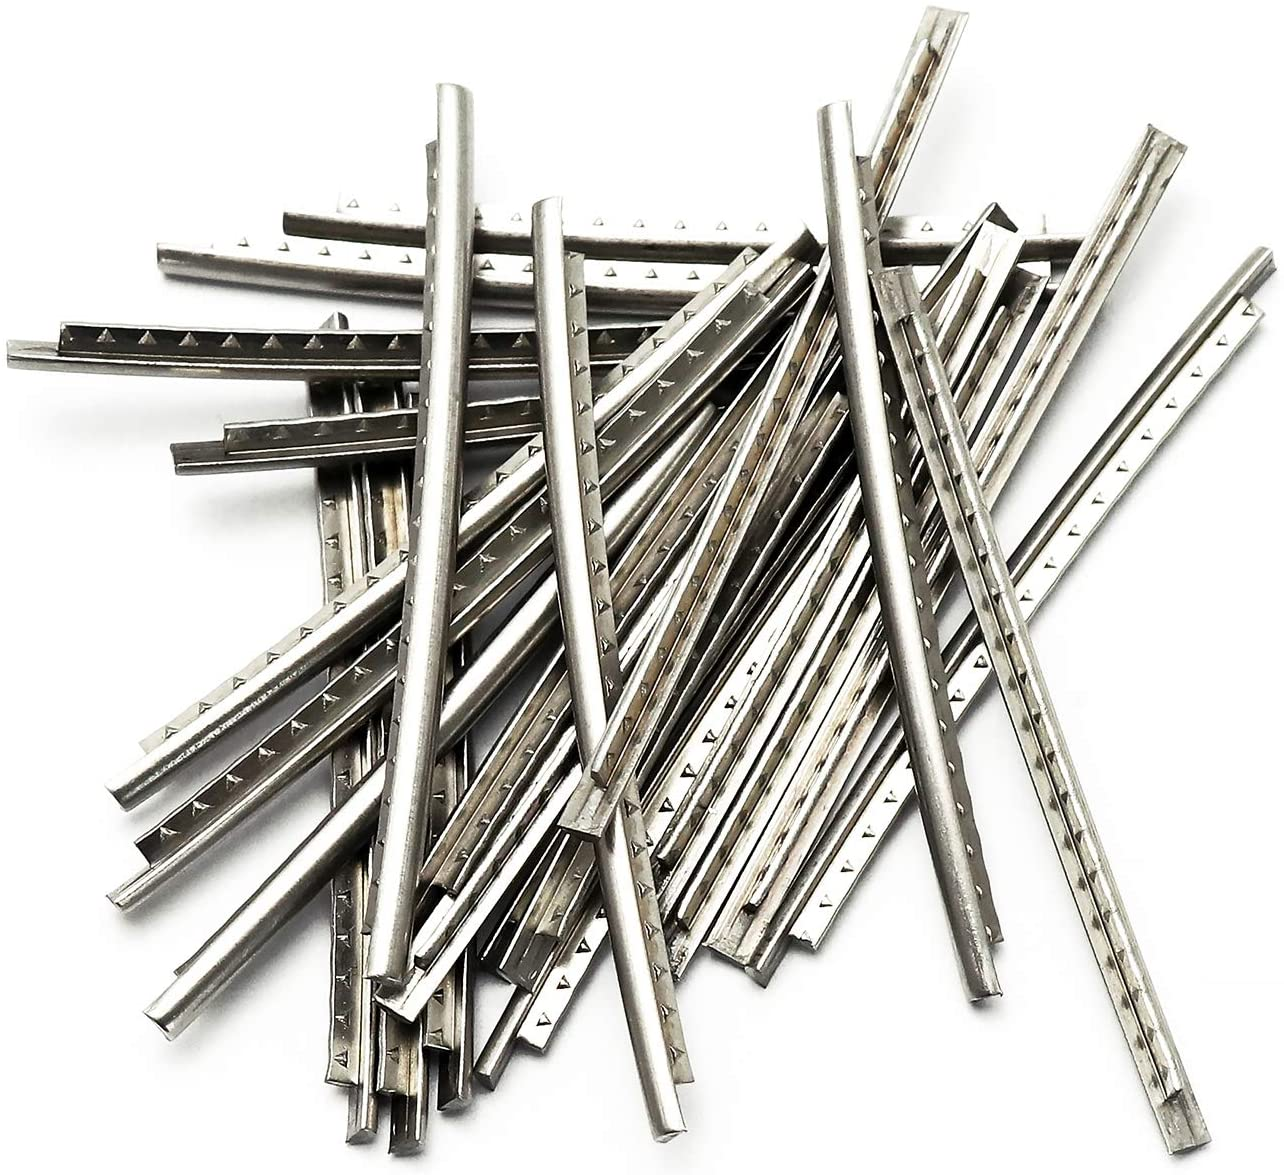 price Super beauty product restock quality top! Holmer Guitar Fret Wires 2.9mm Frets Steel Fretwire Stainless 22